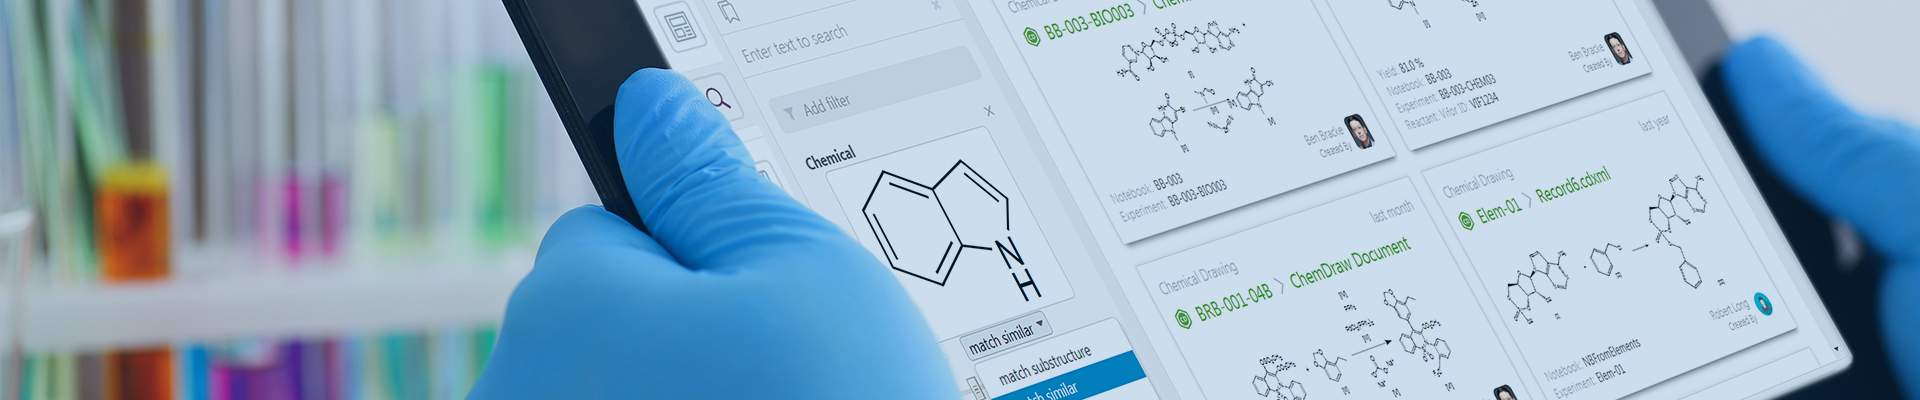 Signals_Notebook_ChemSearch_014409A_1920x400.jpg